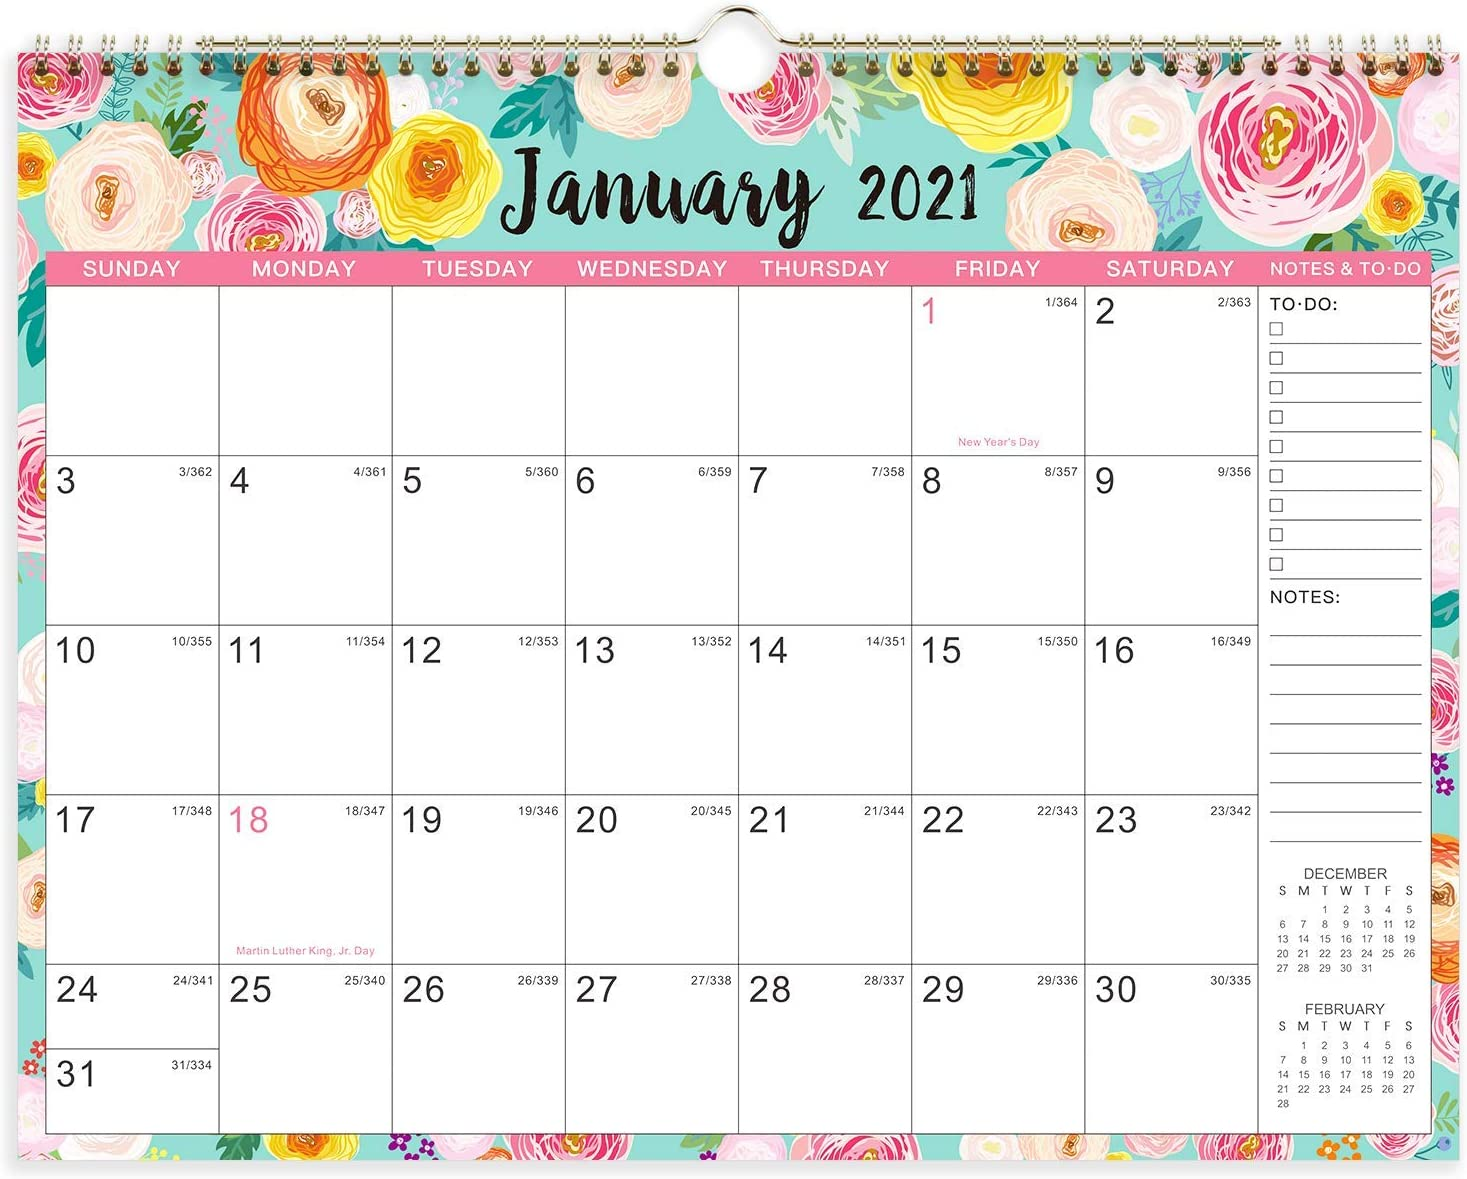 """2021 Calendar - Wall Calendar 2021 with Foral Monthly Page, Jan 2021 - Dec 2021, 15"""" x 11.5"""", Twin-Wire Binding & Large Blocks, Perfect for School, Office & Home Planning"""